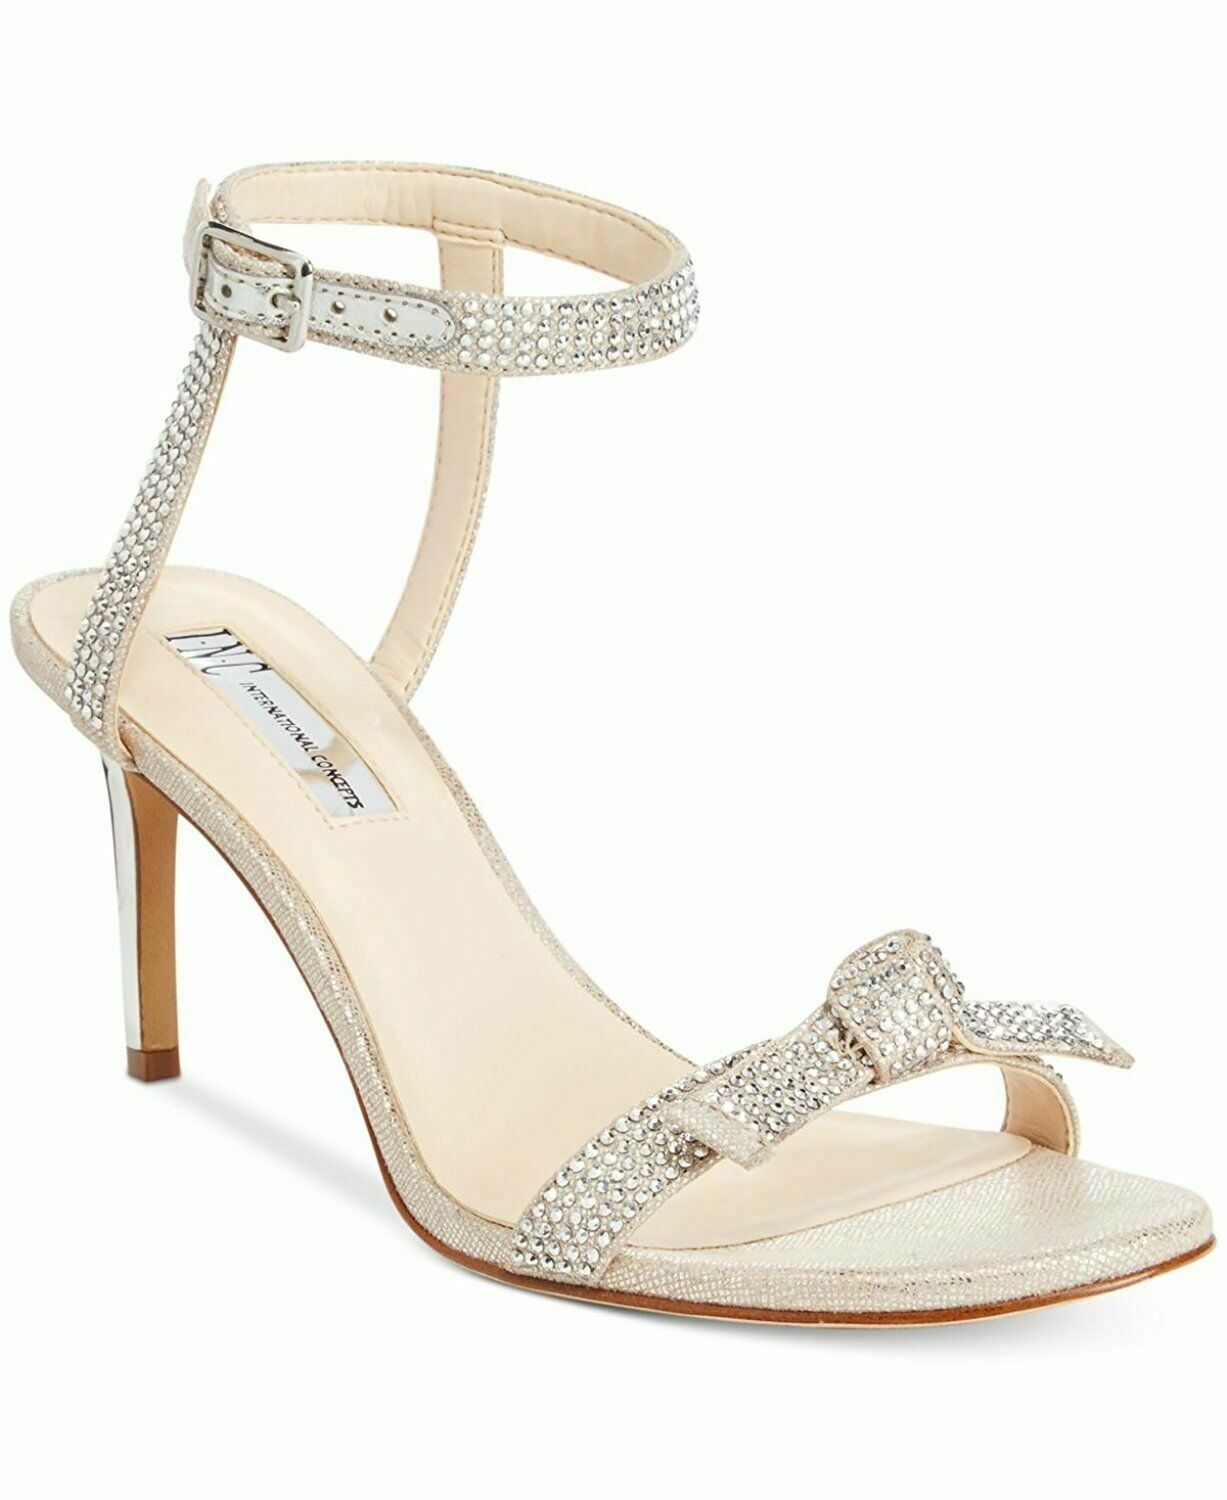 INC International Concepts Laniah Womens Heeled Sandals Nude New Box US 5   UK 3